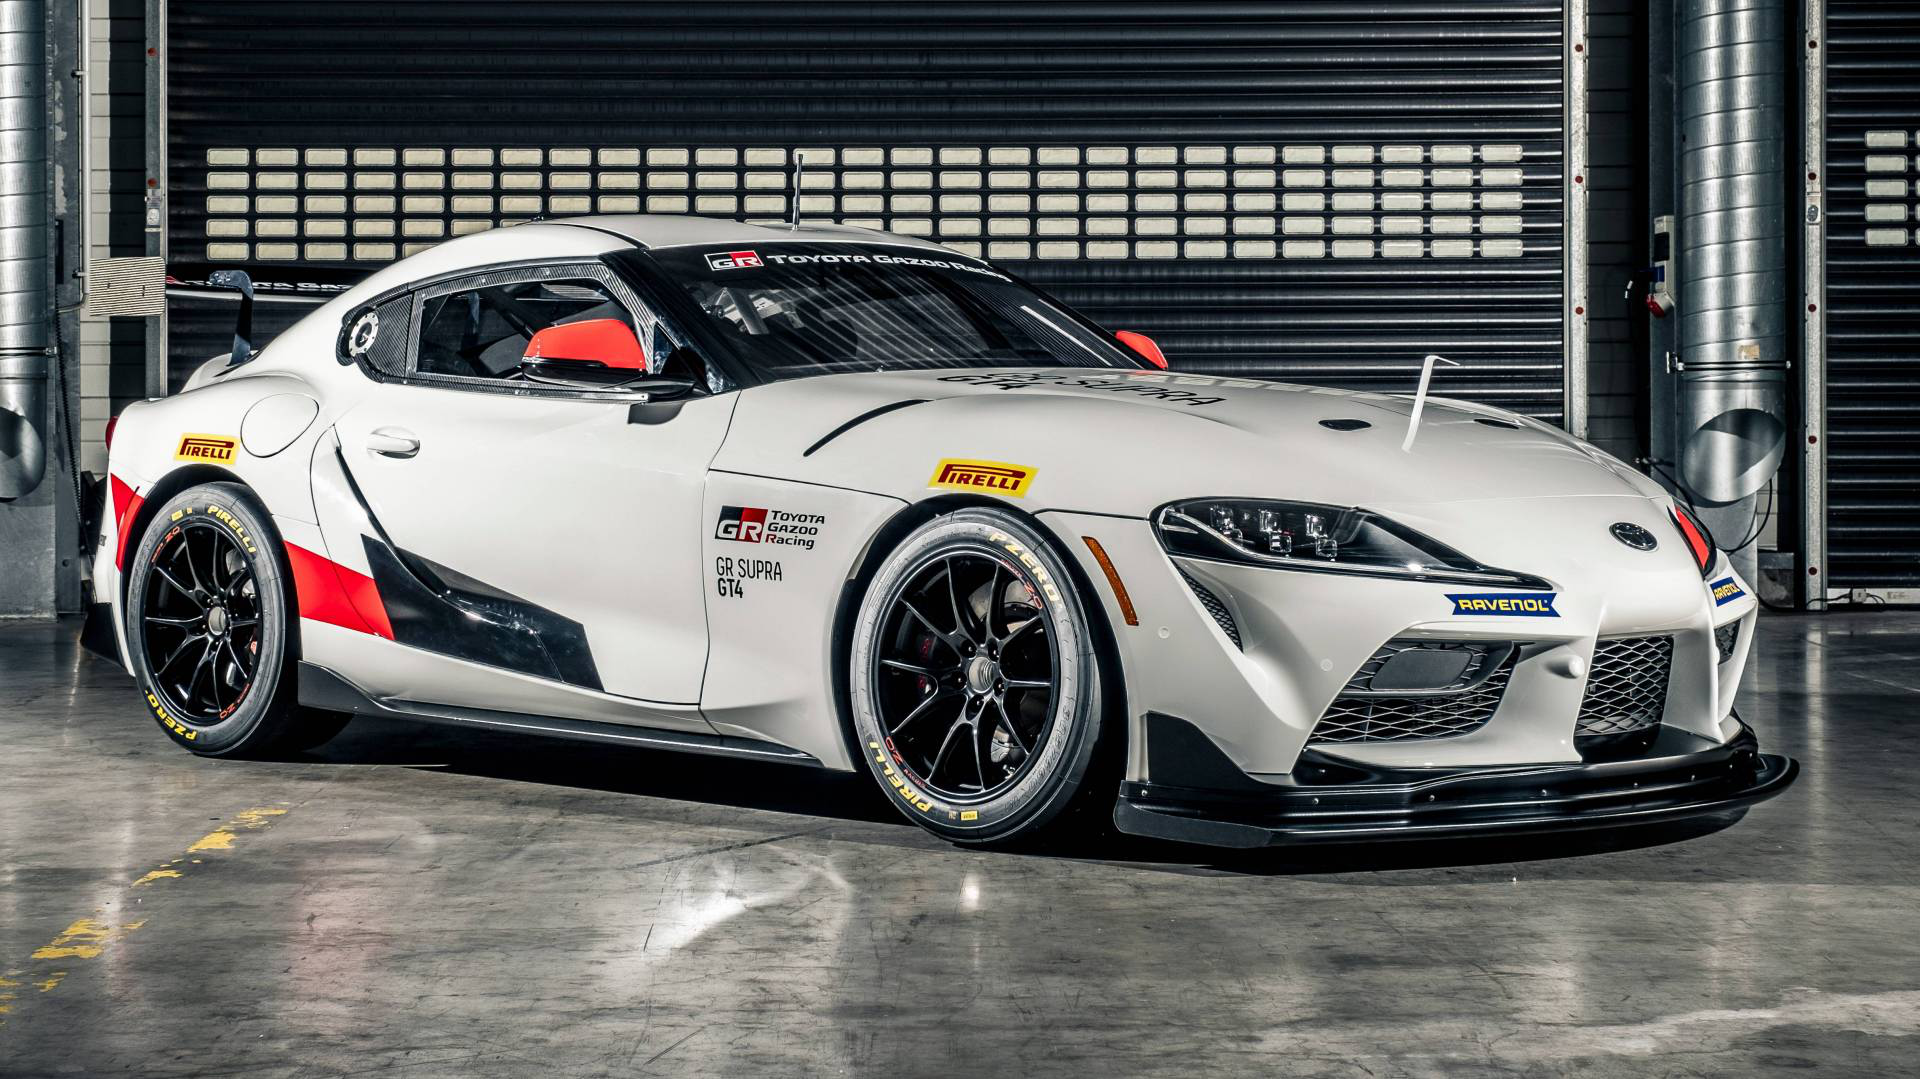 Toyota Reveals Gr Supra Gt4 For Customer Teams Debut Set For 2020 Carmojo Based On The Road Going Model The Toyota Gr Supra Gt4 Race Car Features Many M